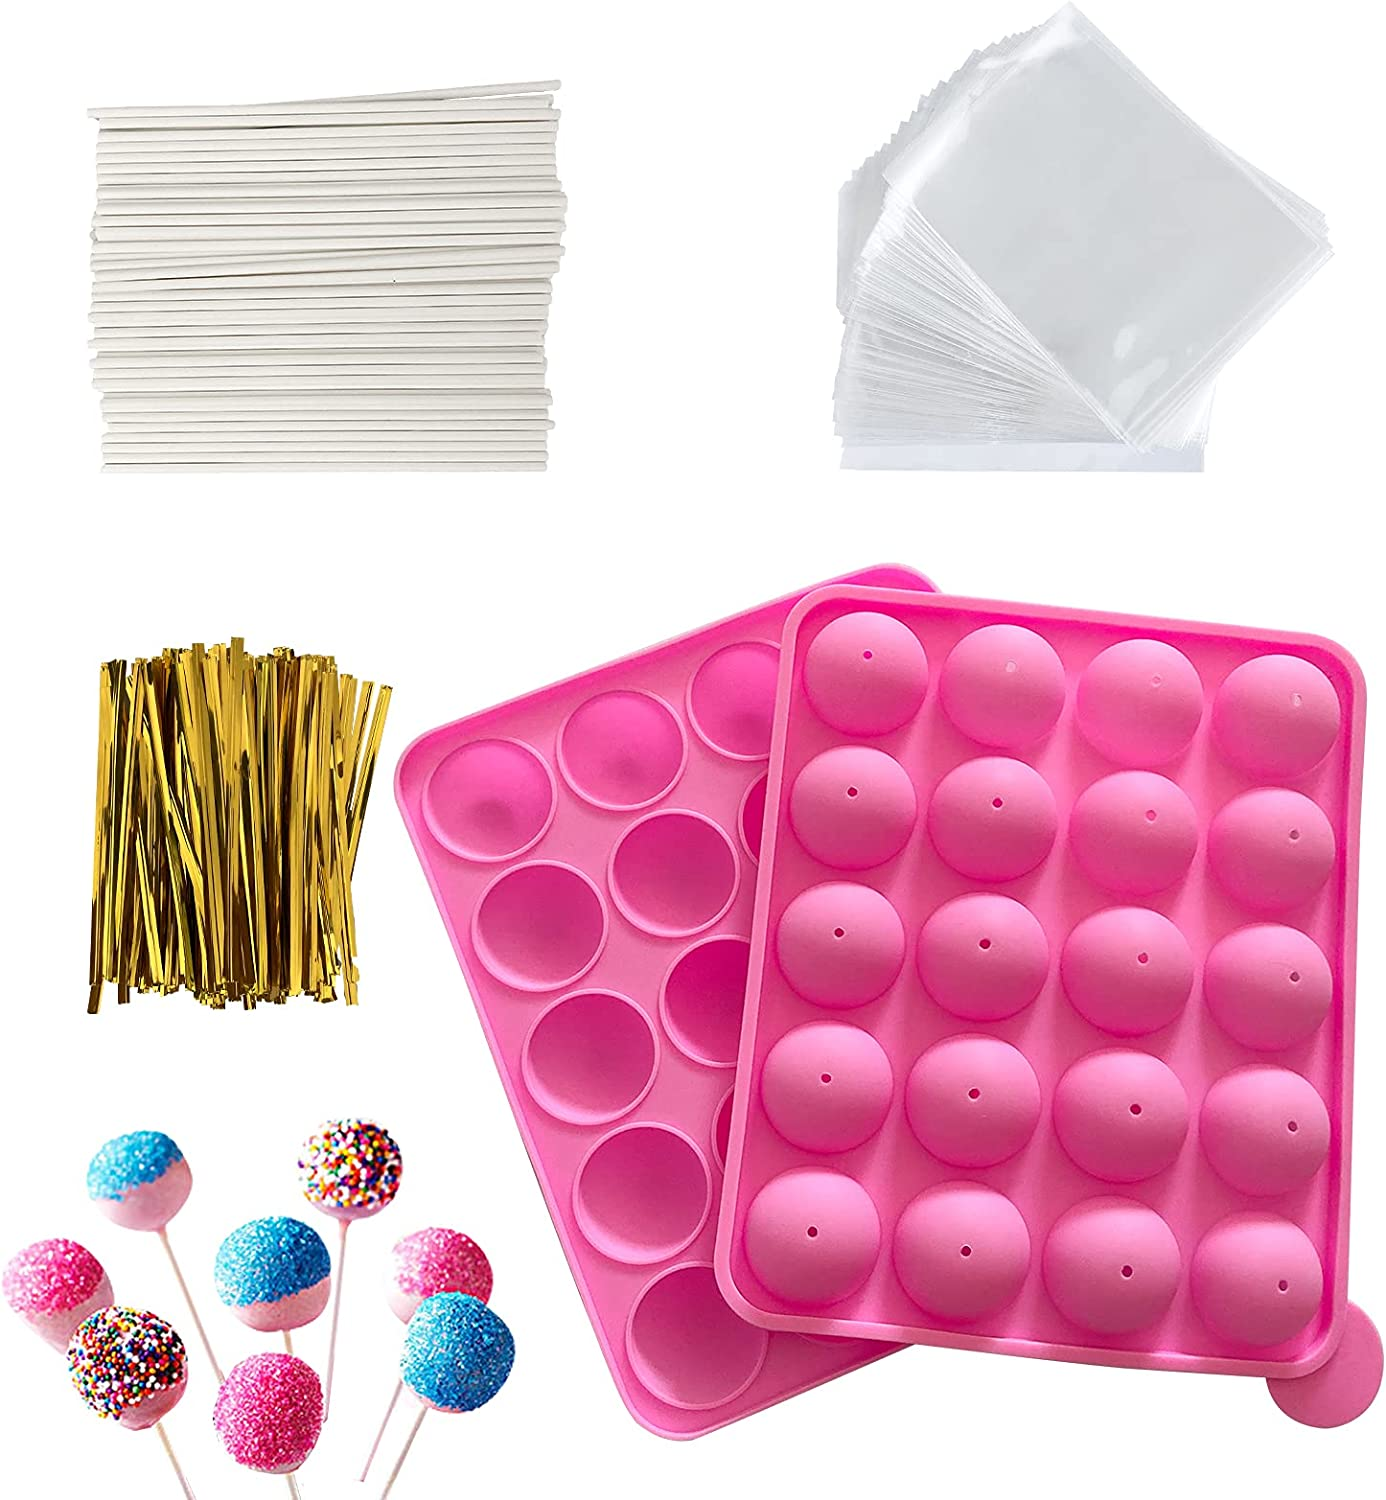 HYCSC 20 Cavity Silicone Cake Pop Mold Kits - Cake Pop Tray with 60pcs Cake Pop Sticks, Bags, Twist Ties, Great for Cake Pop Maker , Lollipop Mold, Cake Pop and Chocolate